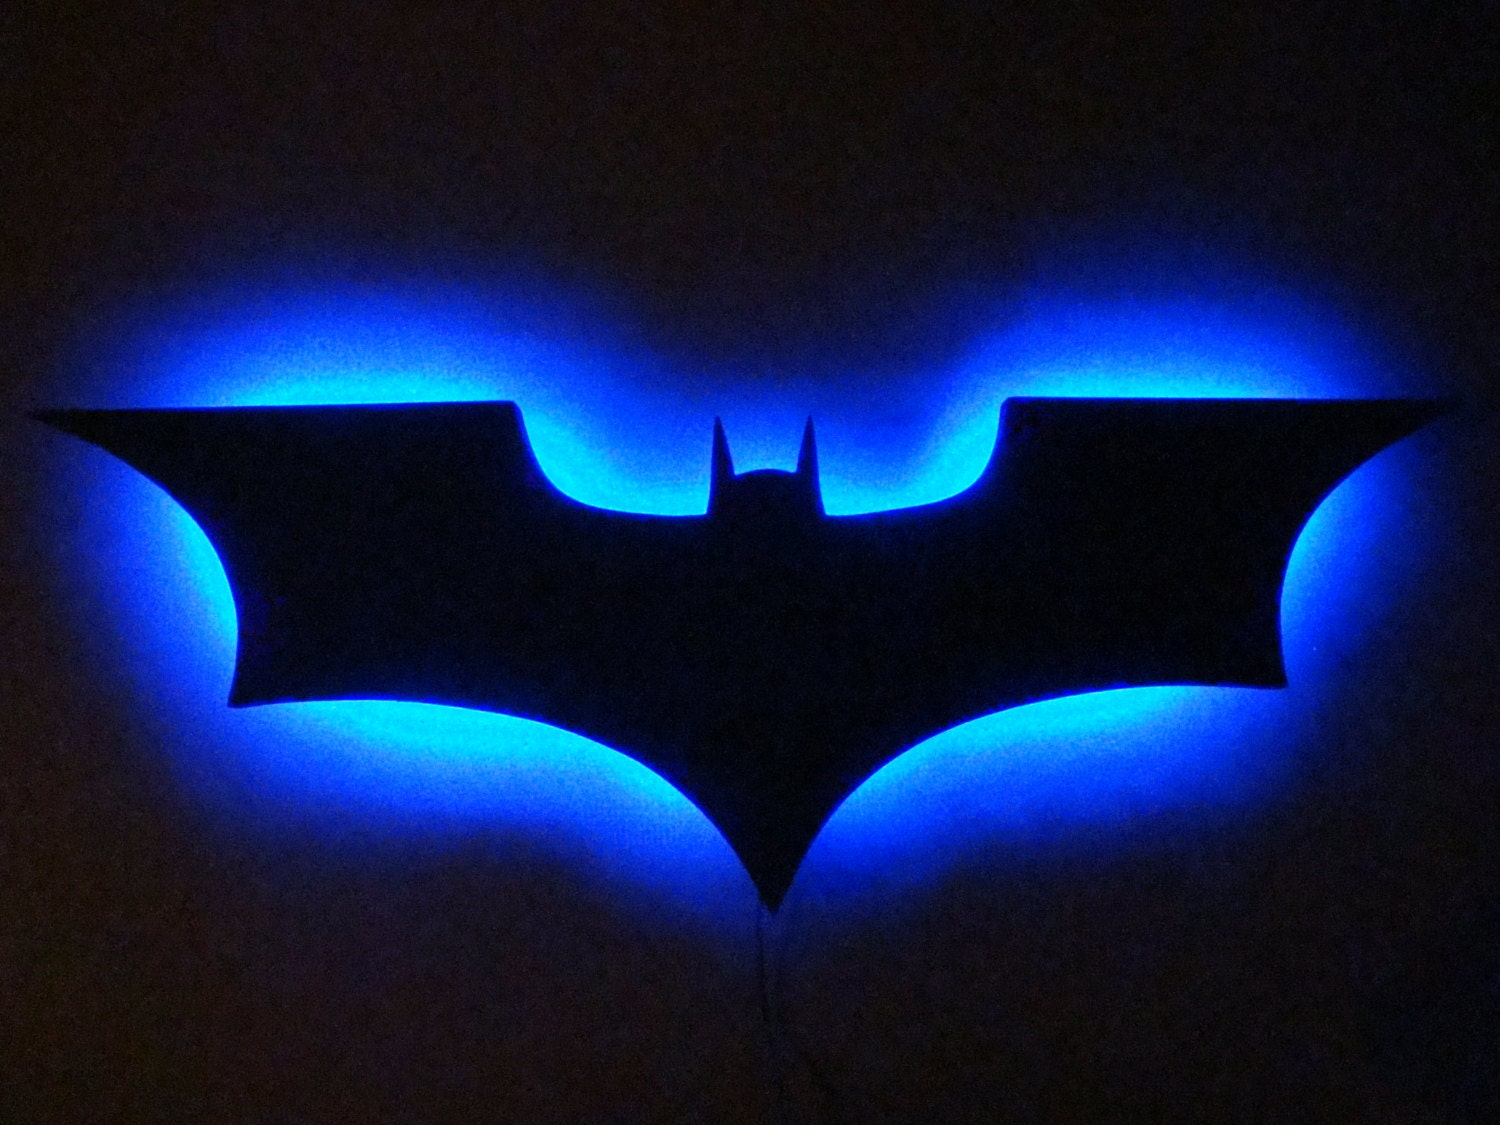 Batman Wall Light Diy : Batman Logo LED Wall Light / Night Light